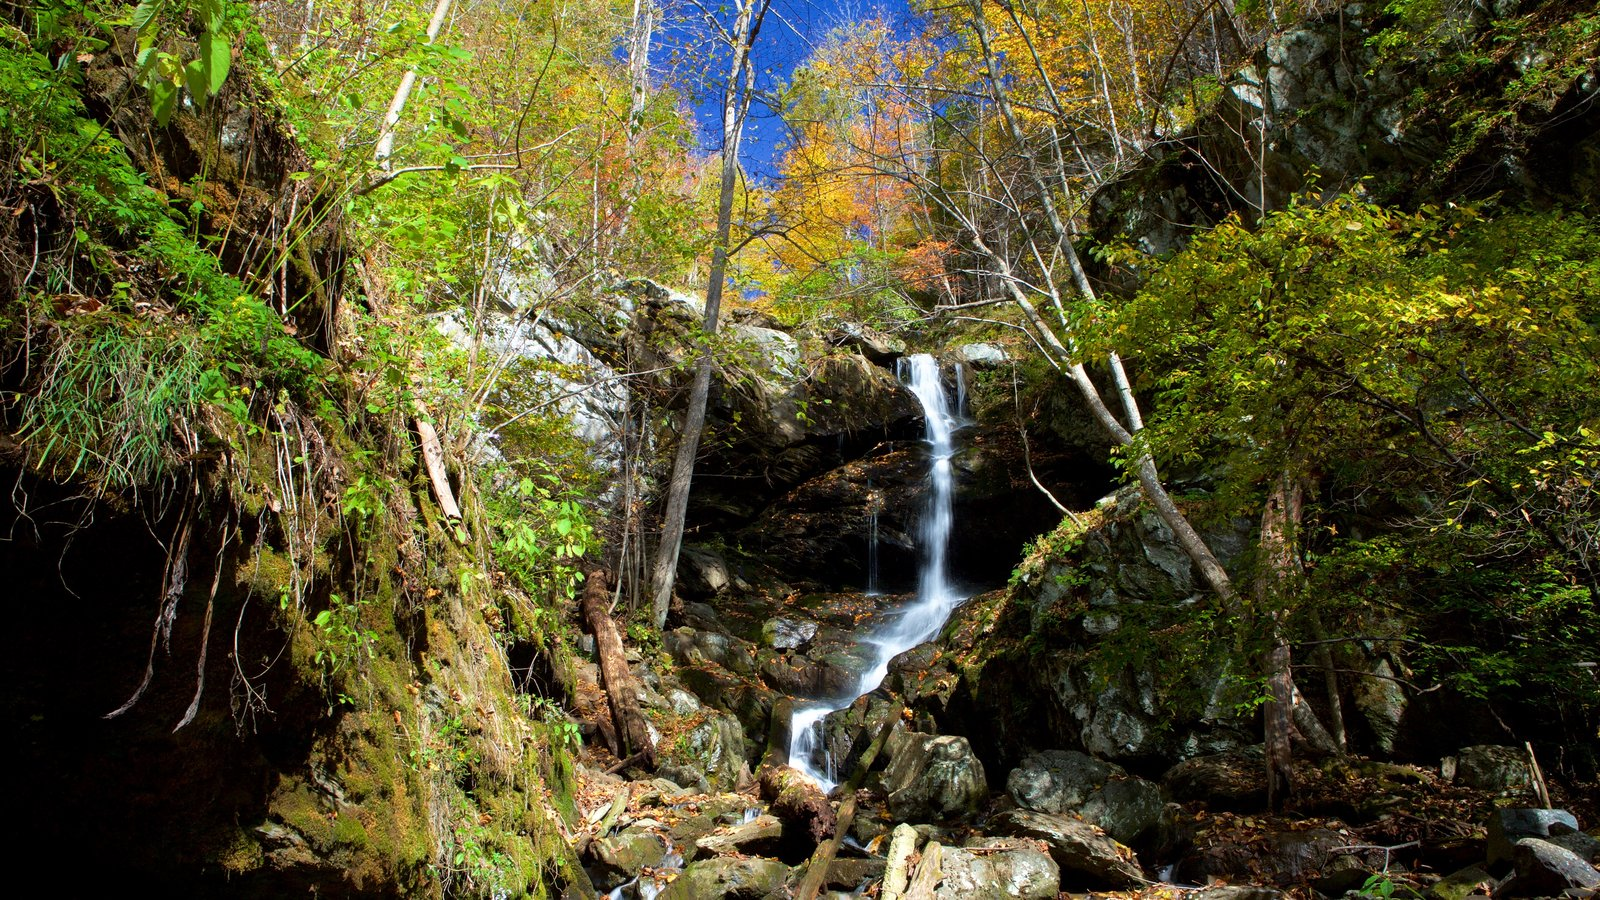 Shenandoah National Park showing a cascade, forest scenes and mountains